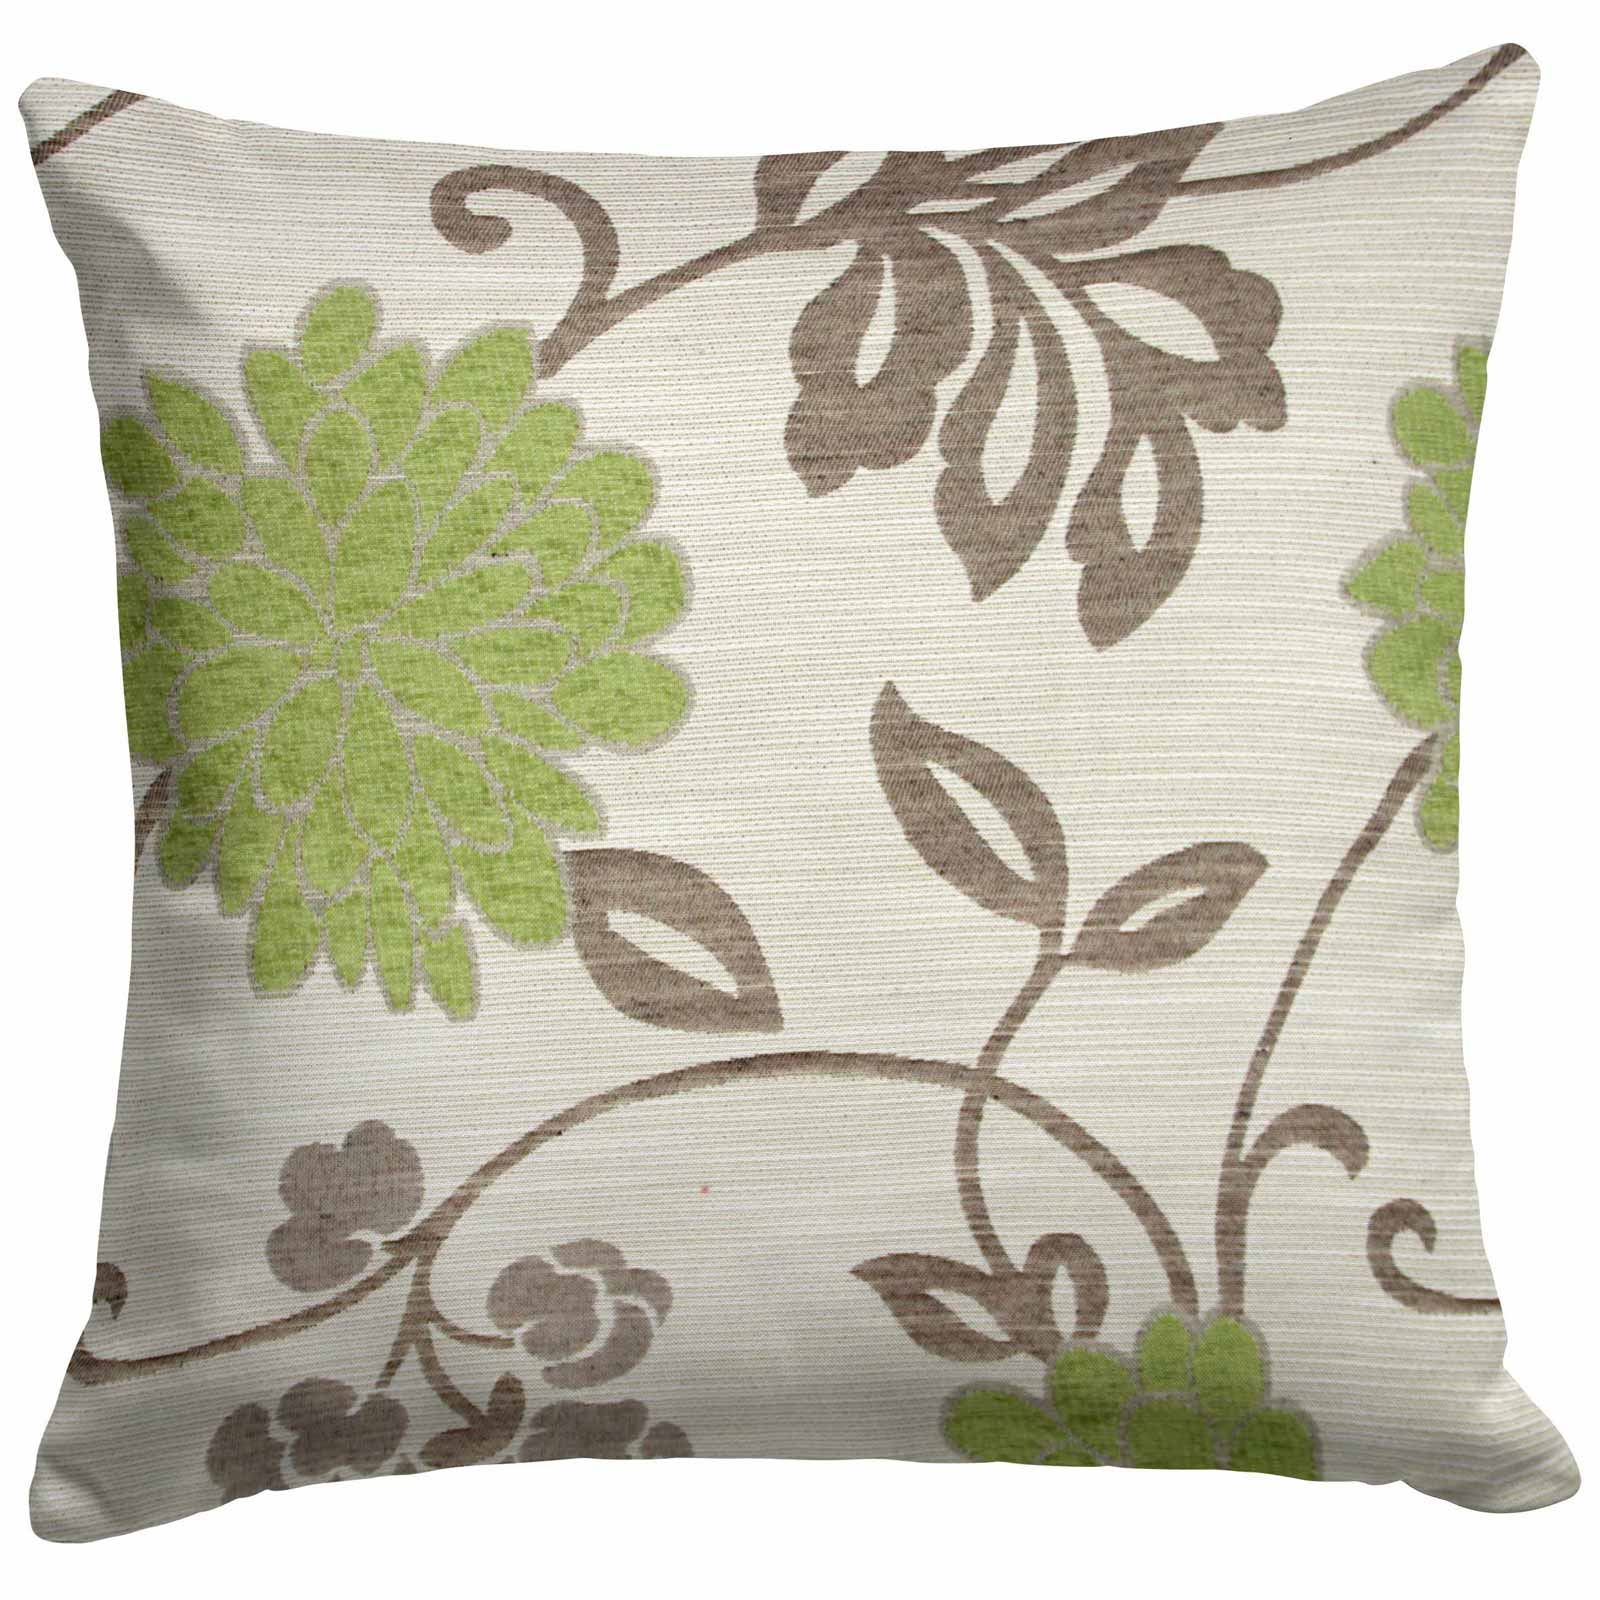 Set-of-4-Orla-Cushion-Covers-Reversible-Floral-Cushion-Cover-Collections thumbnail 5